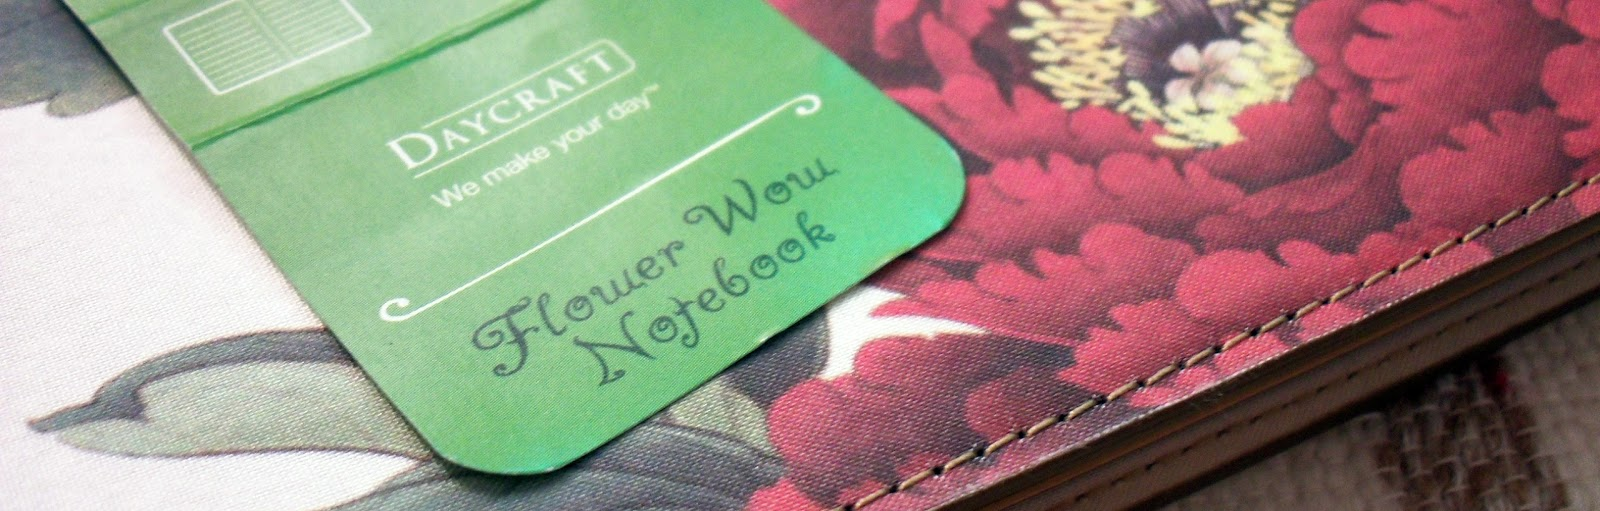 Notebook review daycrafts flower wow rants of the archer im always happy to receive new products to review especially ink and paper when foreal lee of daycraft tai shing diary ltd emailed me to ask if i am mightylinksfo